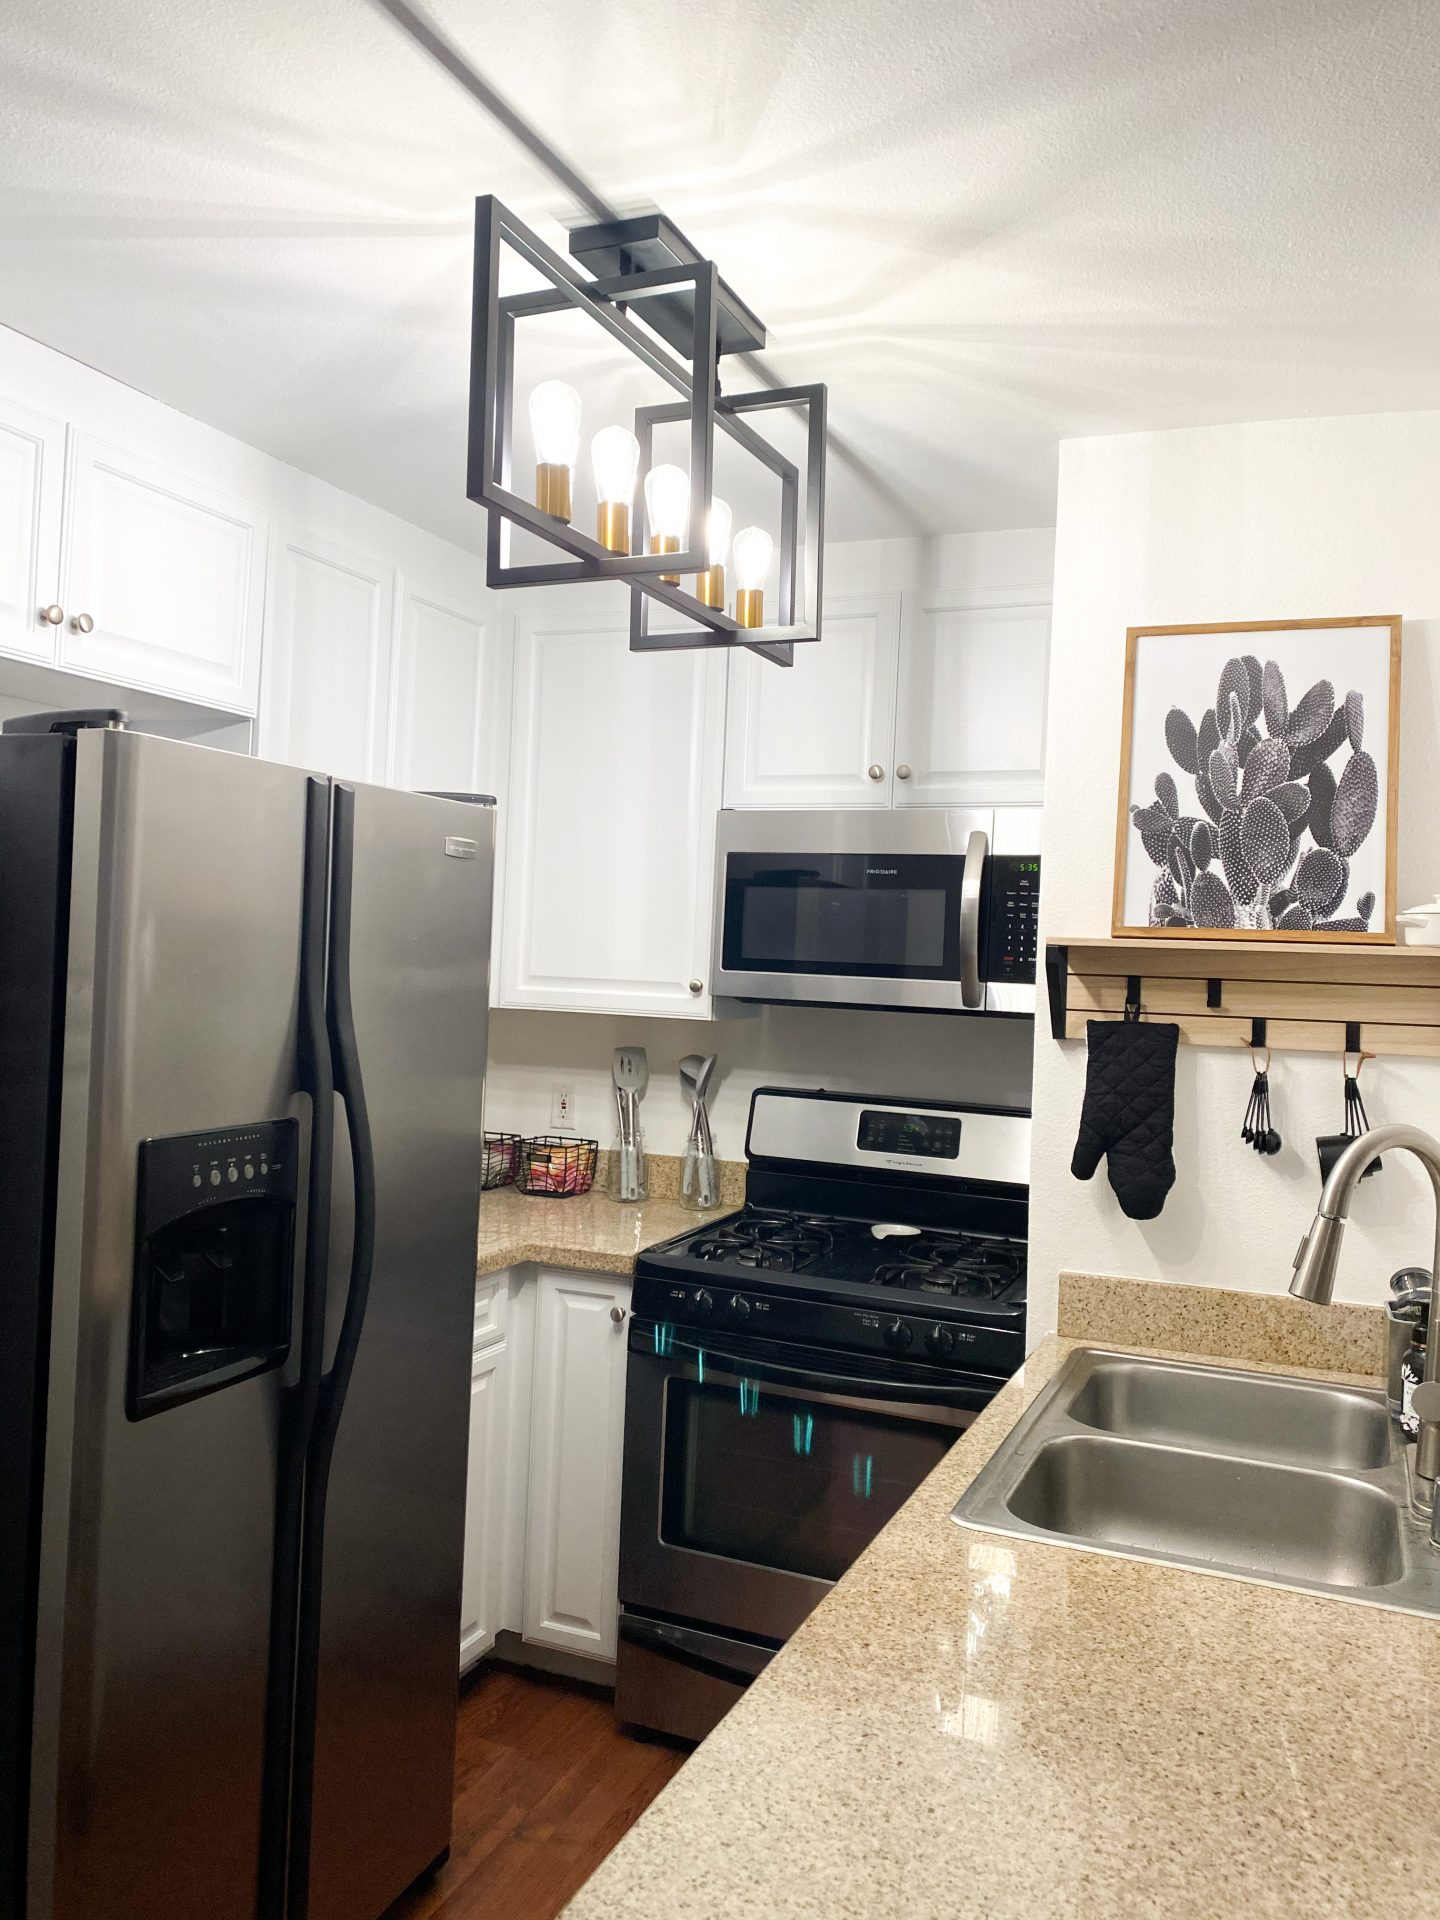 Looking for a kitchen remodel on a budget? Los Angeles blogger My Teacher Got Style is sharing her top tips to a new kitchen here!